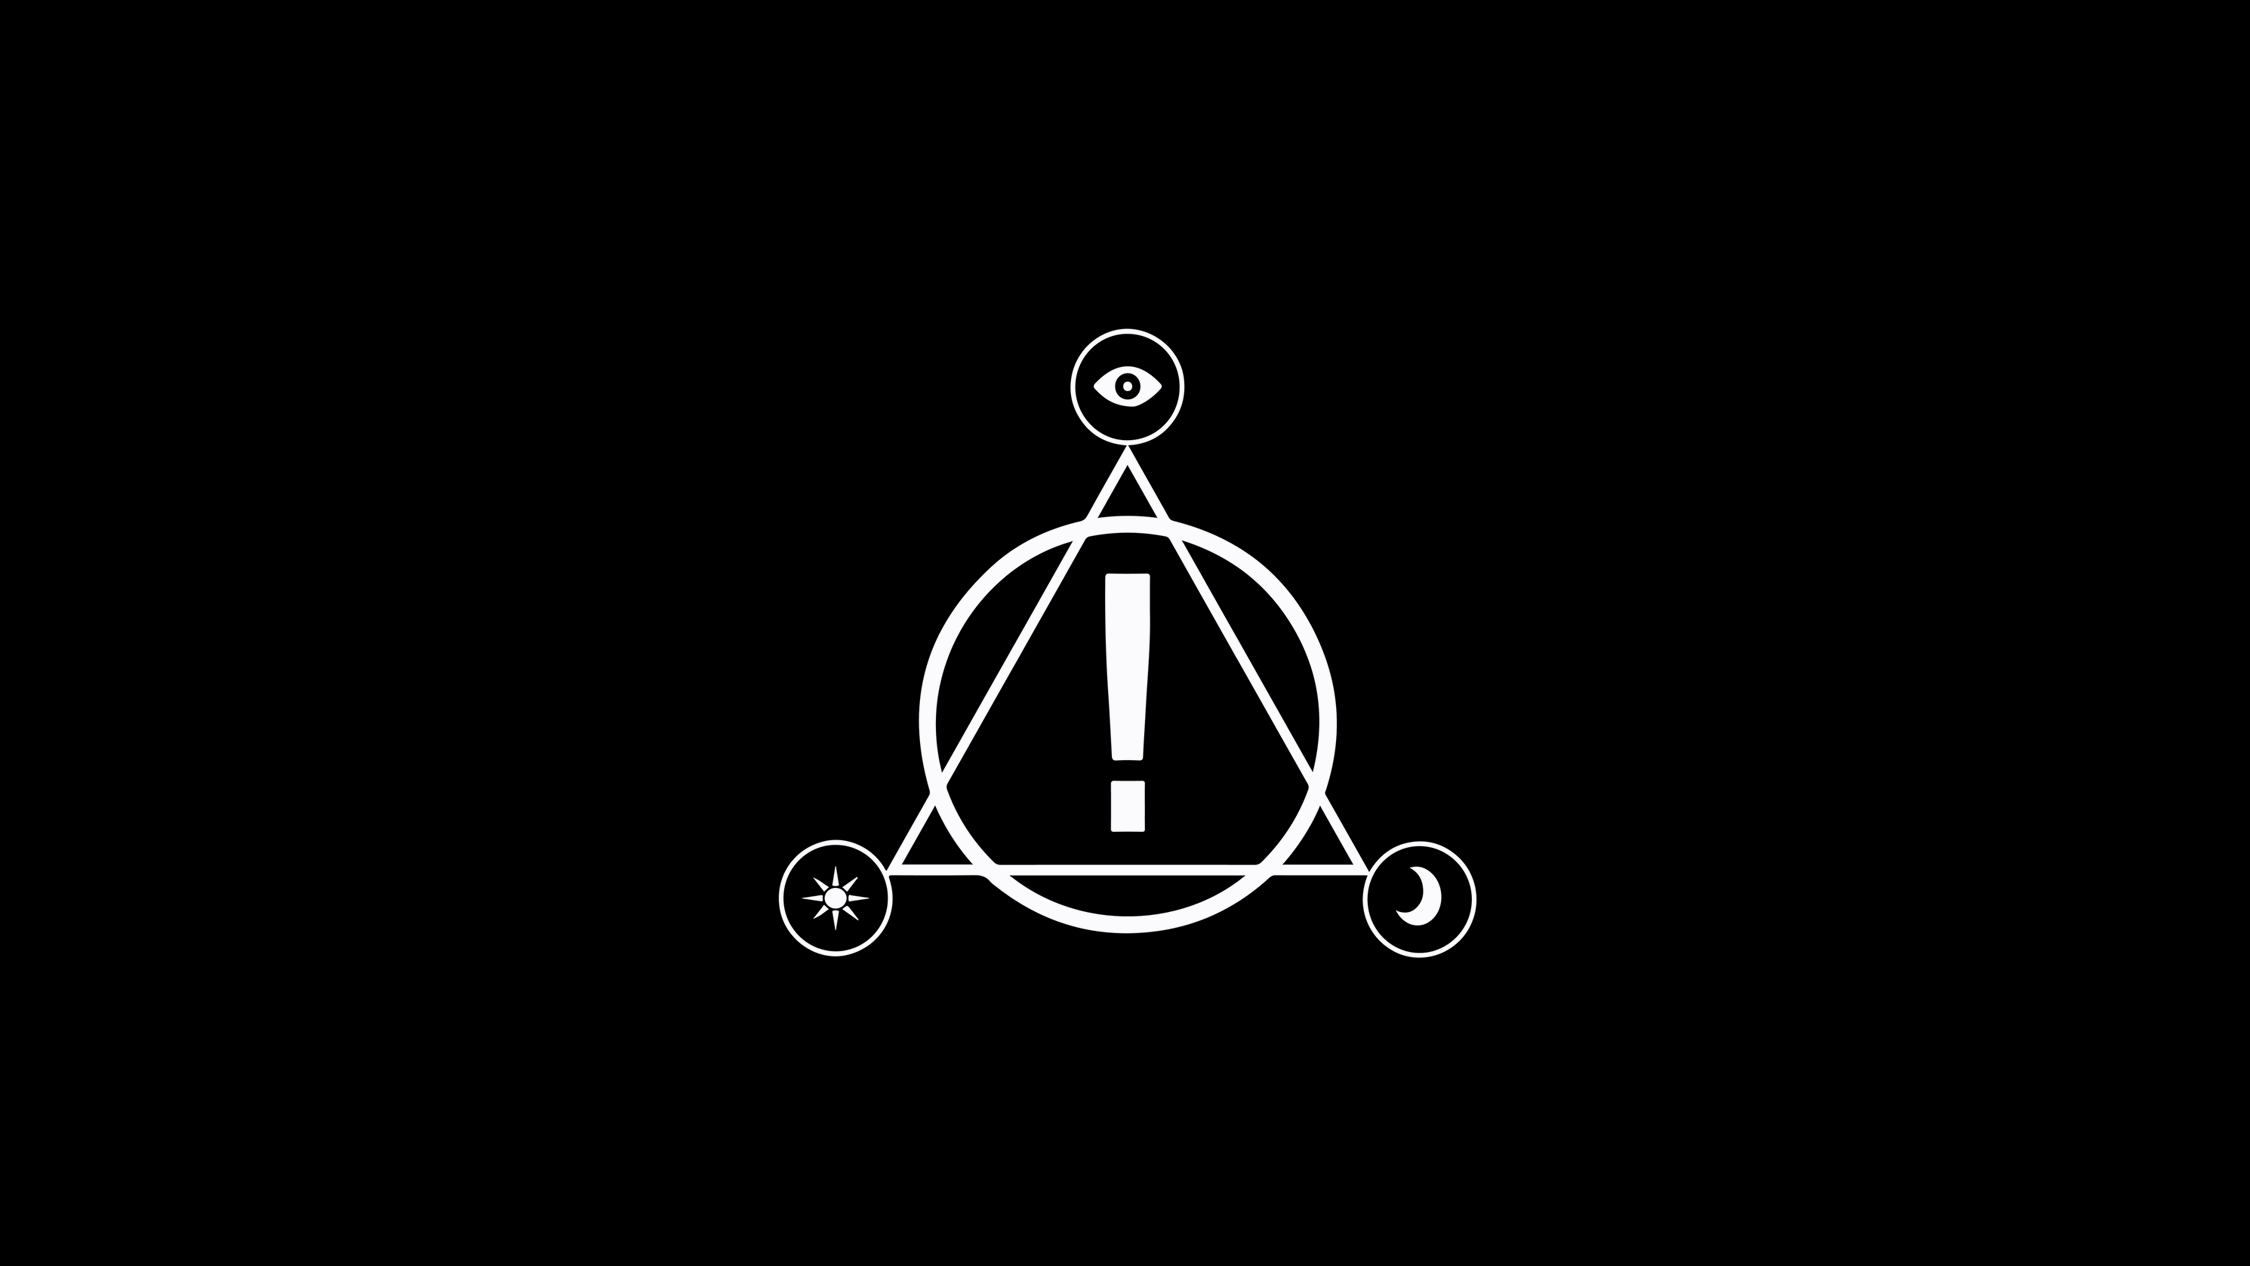 Panic At The Disco Symbol Image Result For Panic At The Disco Logo Panic At The Disco Band Wallpapers Disco